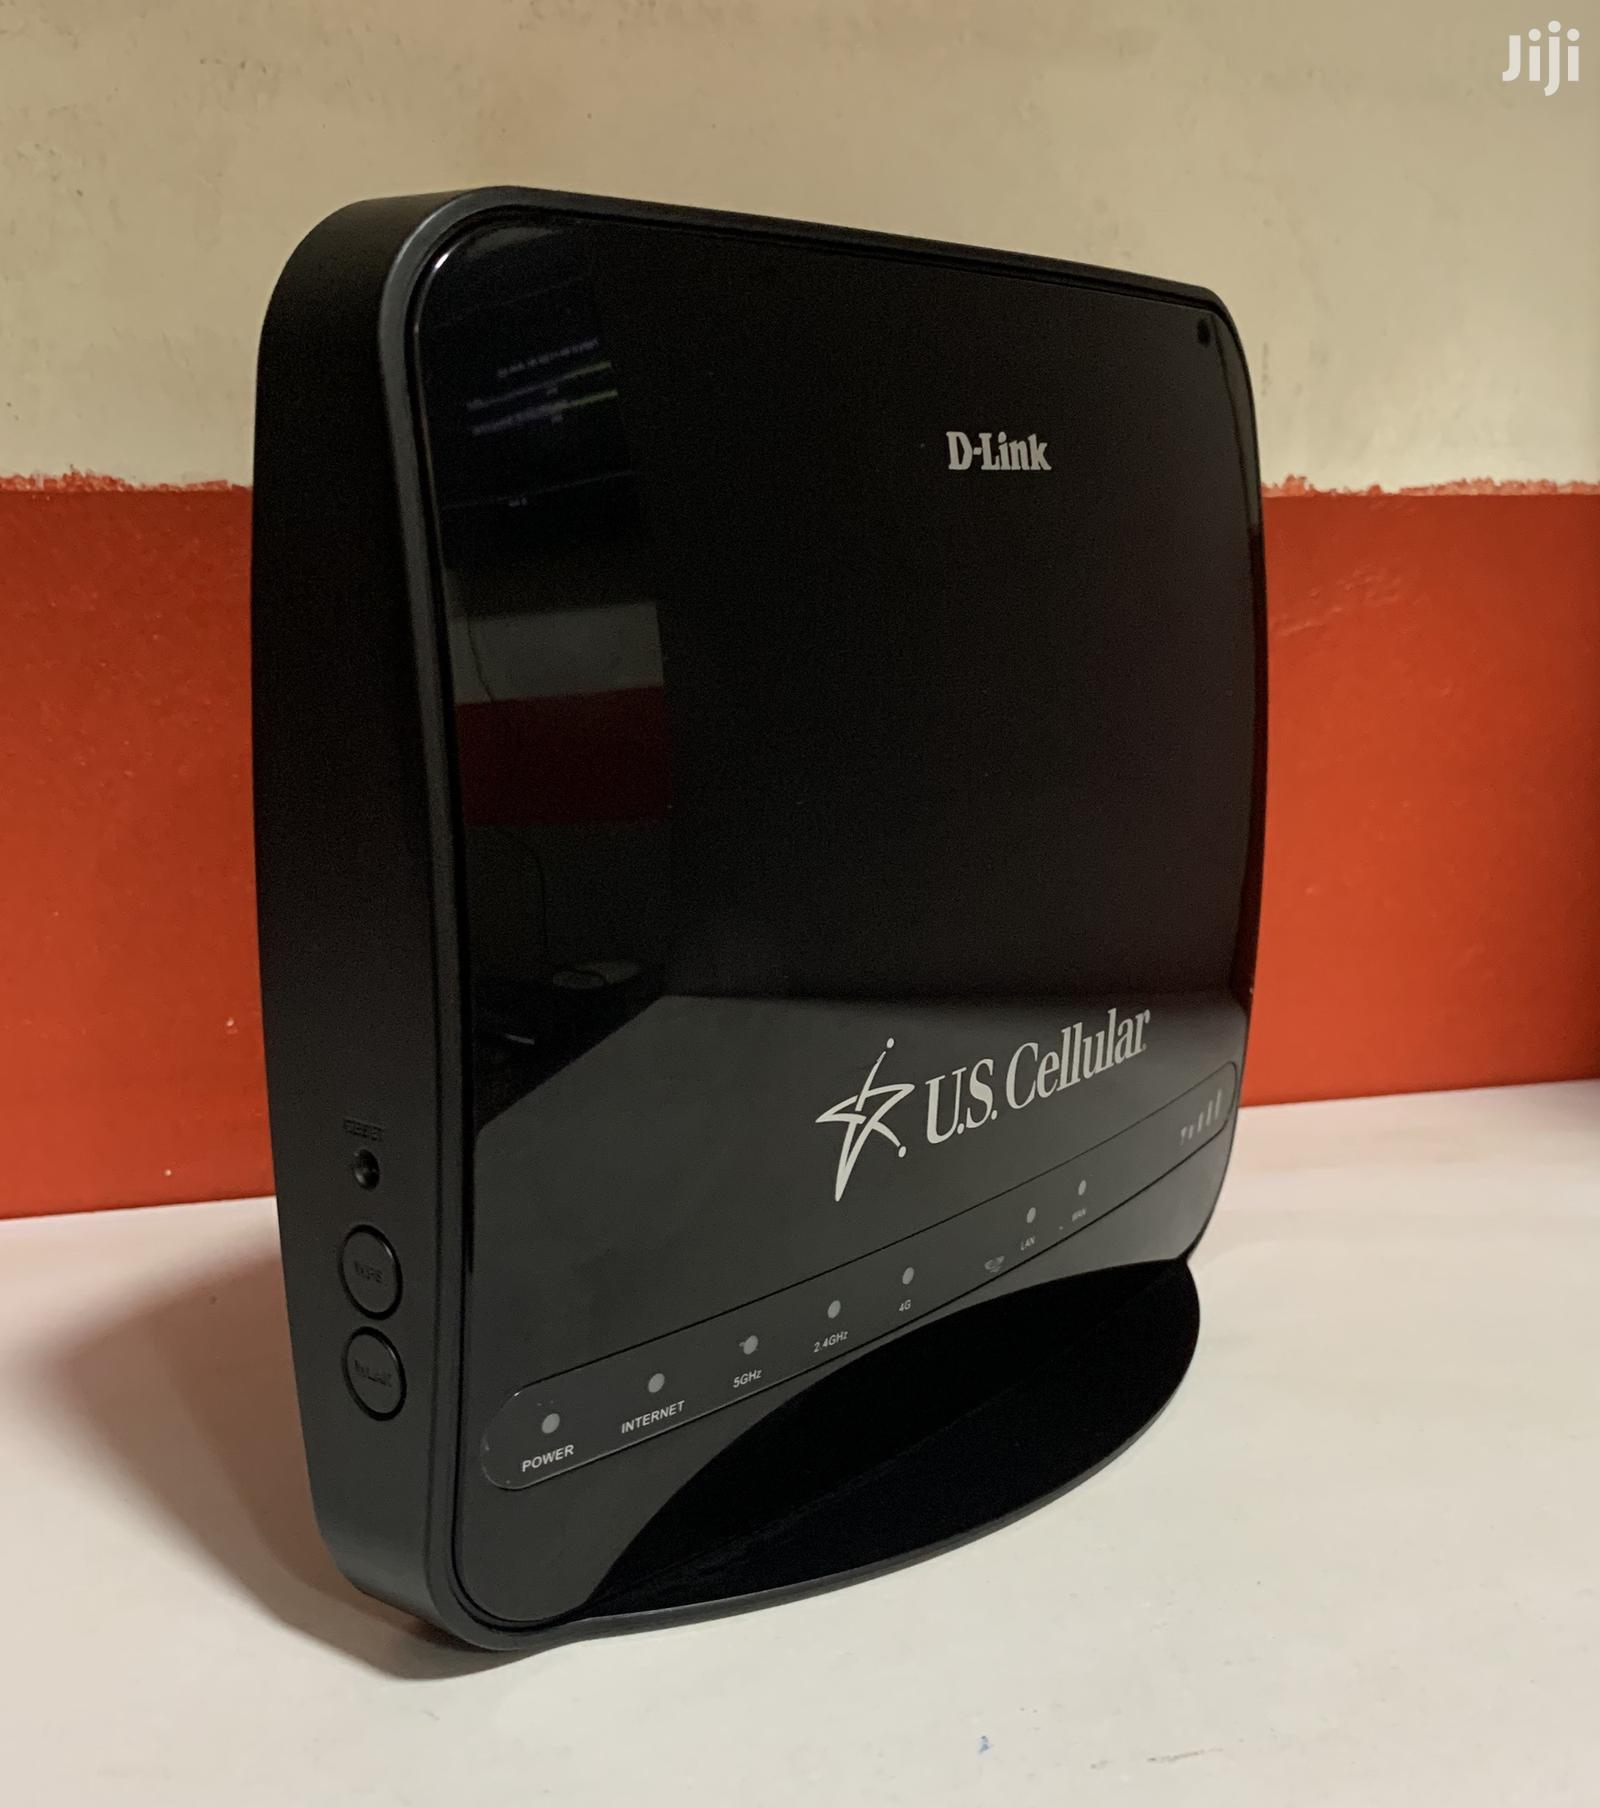 D Link DWR-961 US Cellular Router   Networking Products for sale in Kampala, Central Region, Uganda